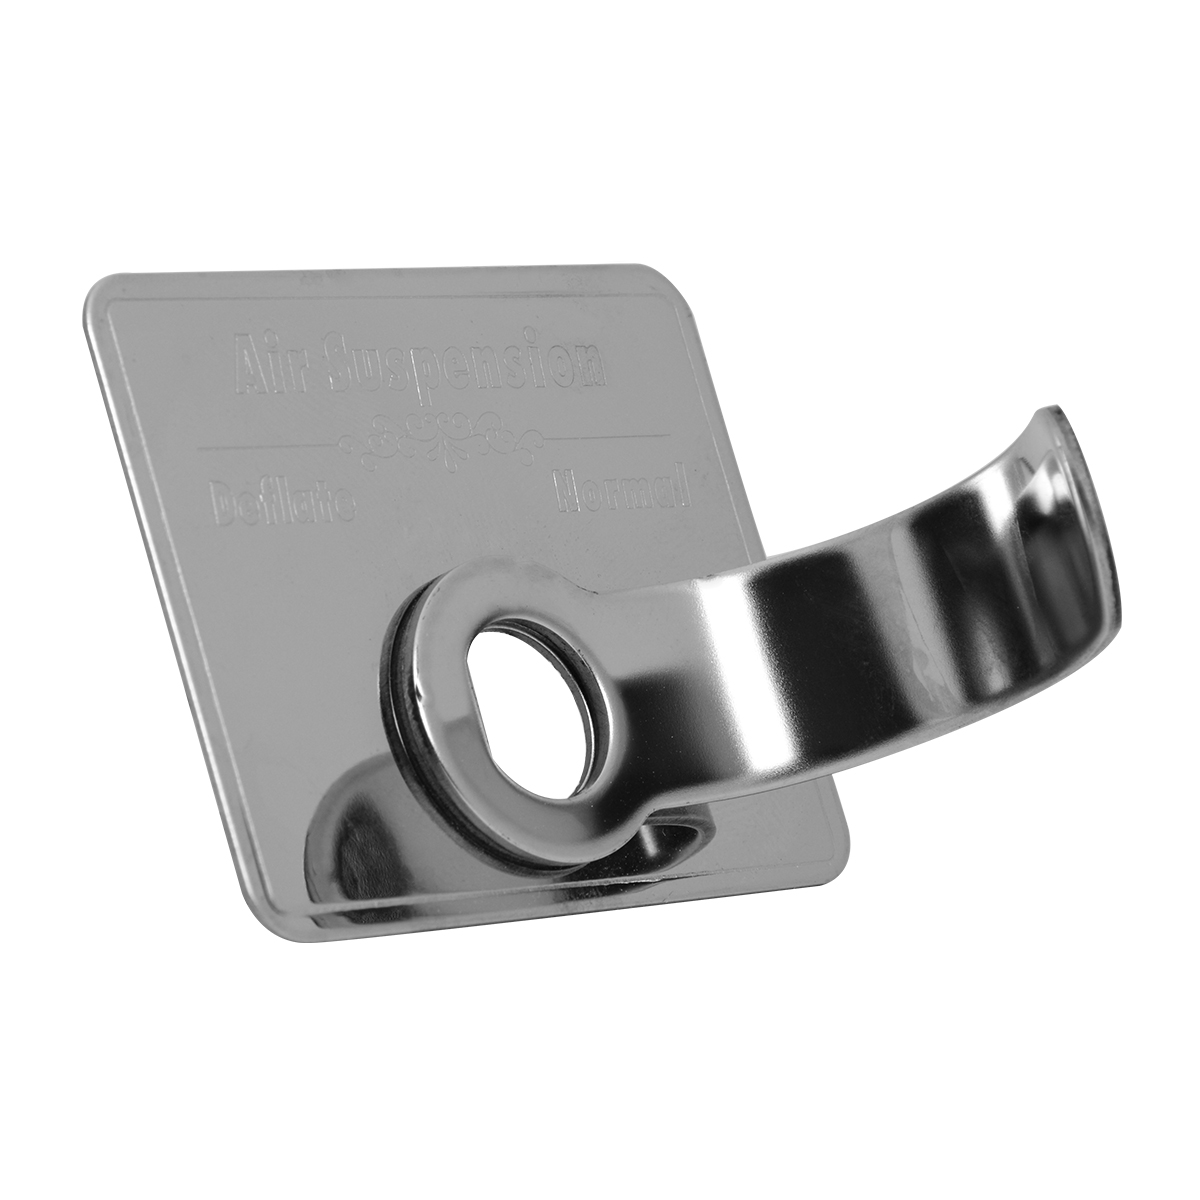 68610 Stainless Steel Air Suspension Switch Guard for KW